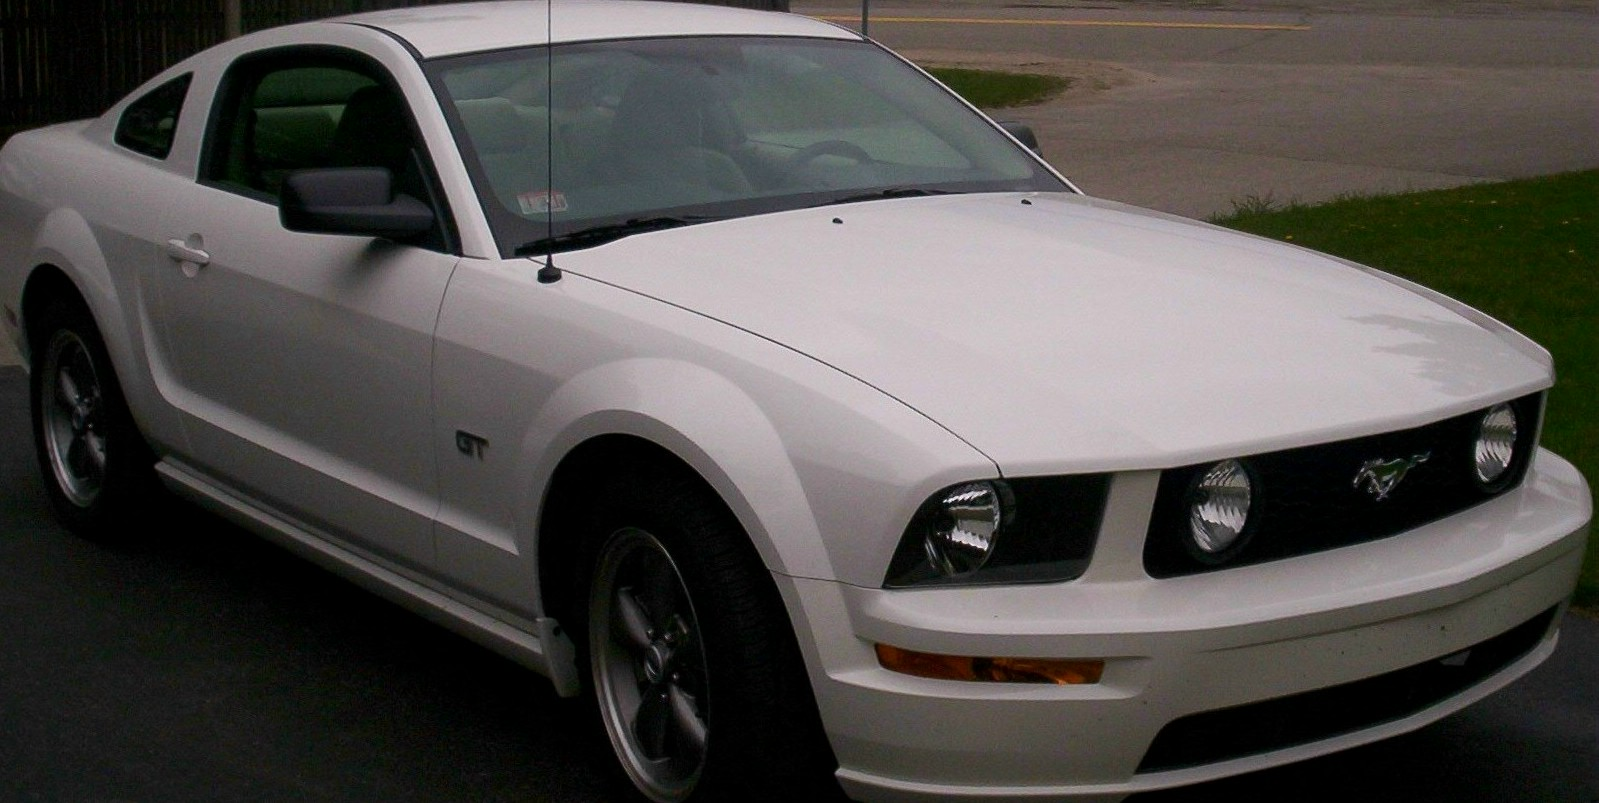 2005 Ford Mustang GT Vortech S-Trim Supercharger